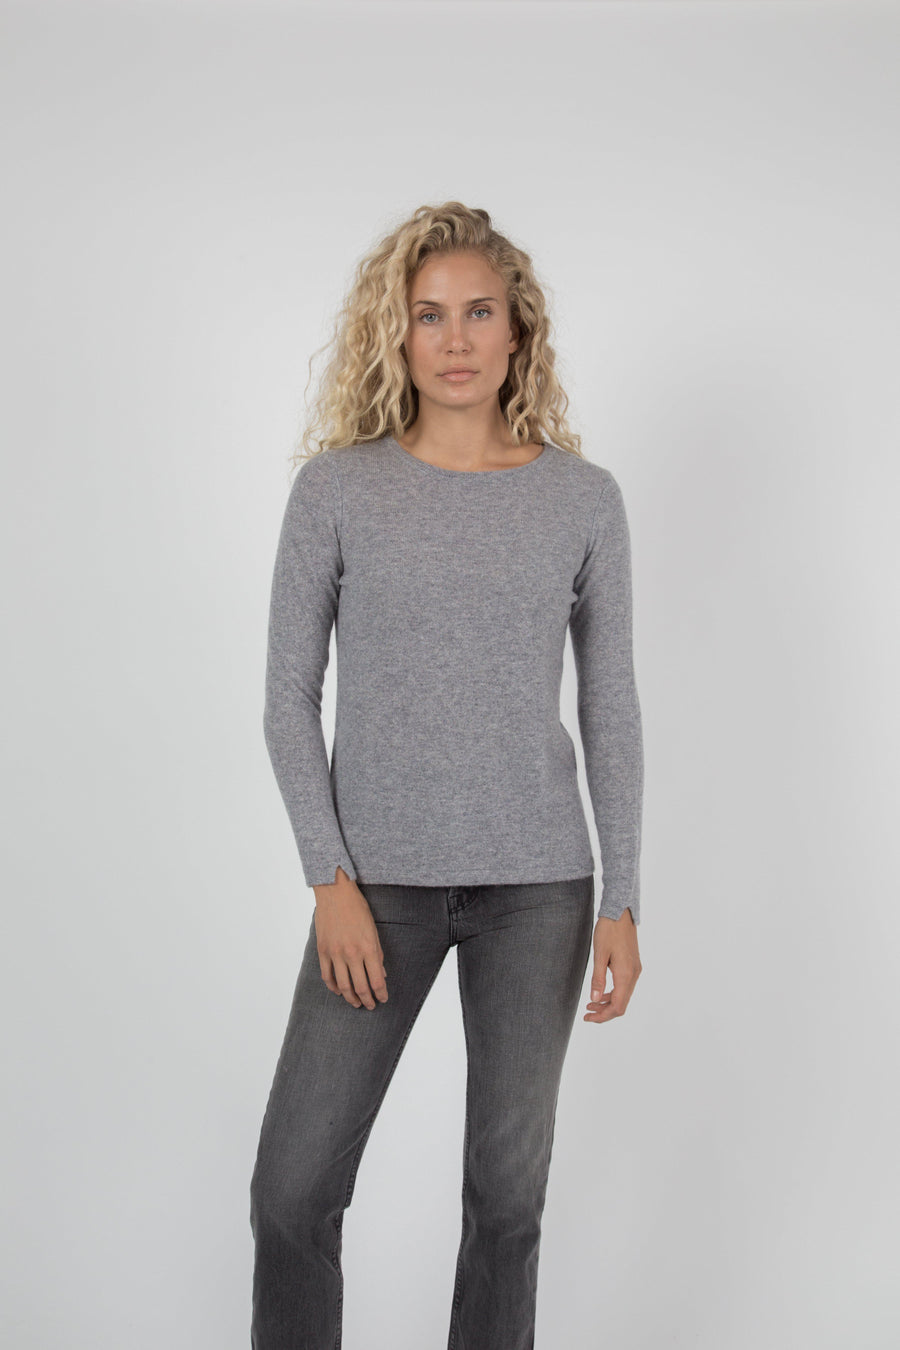 Cashmere Crew Sweater - Granite